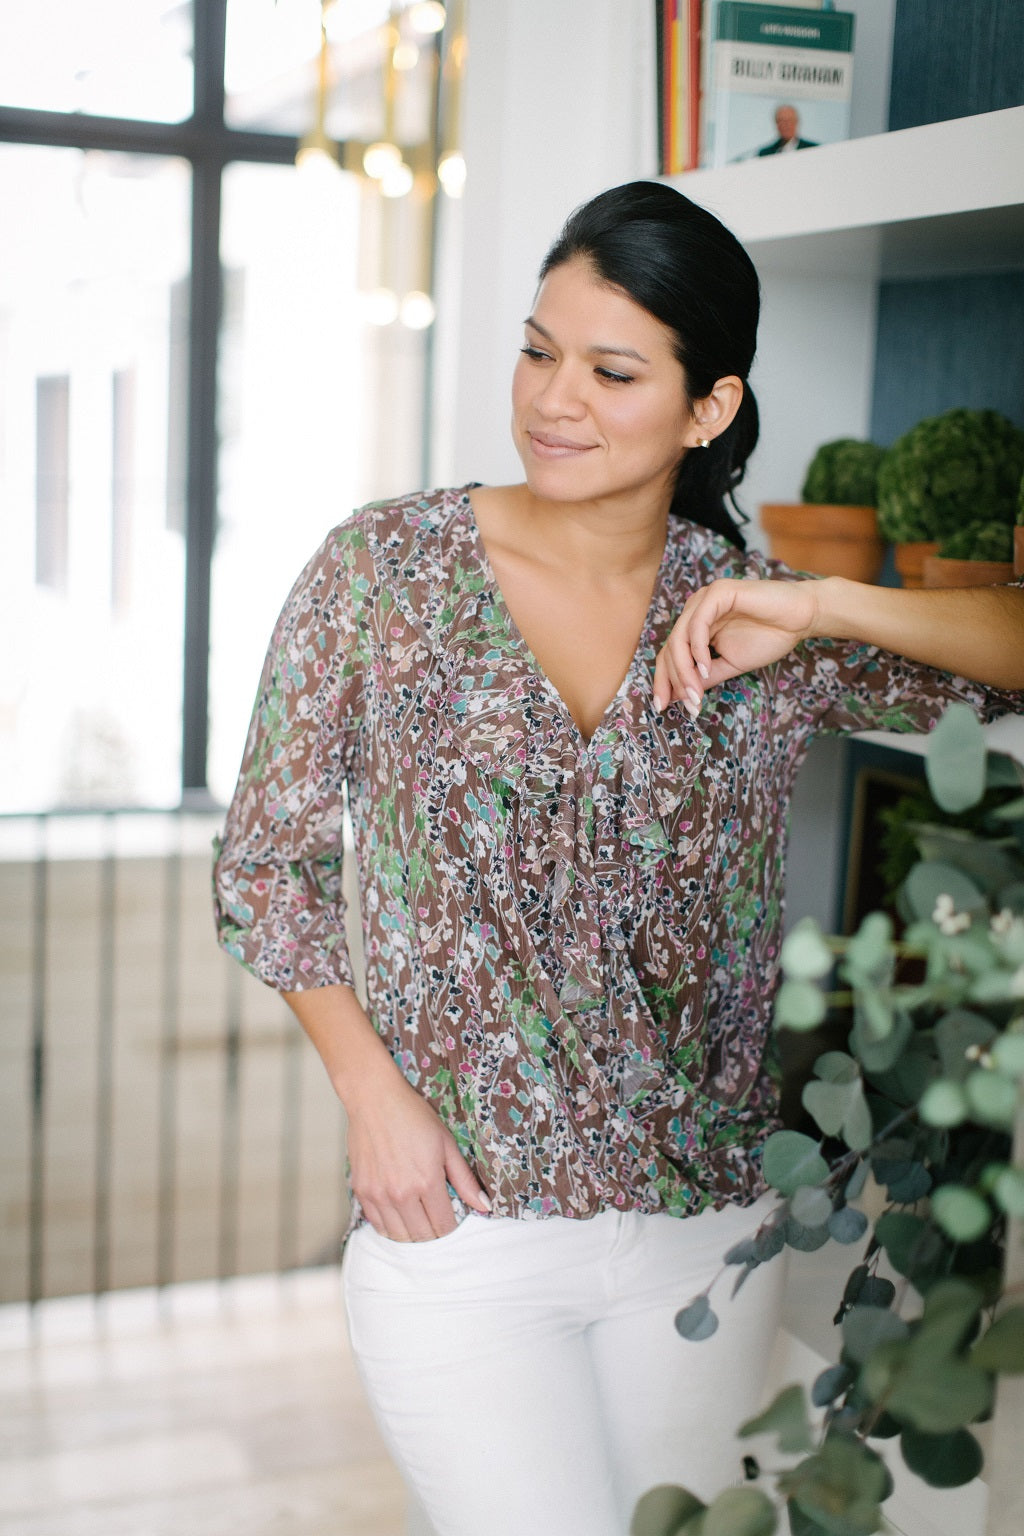 KOKOON Clementine Blouse in Meadowlands Front